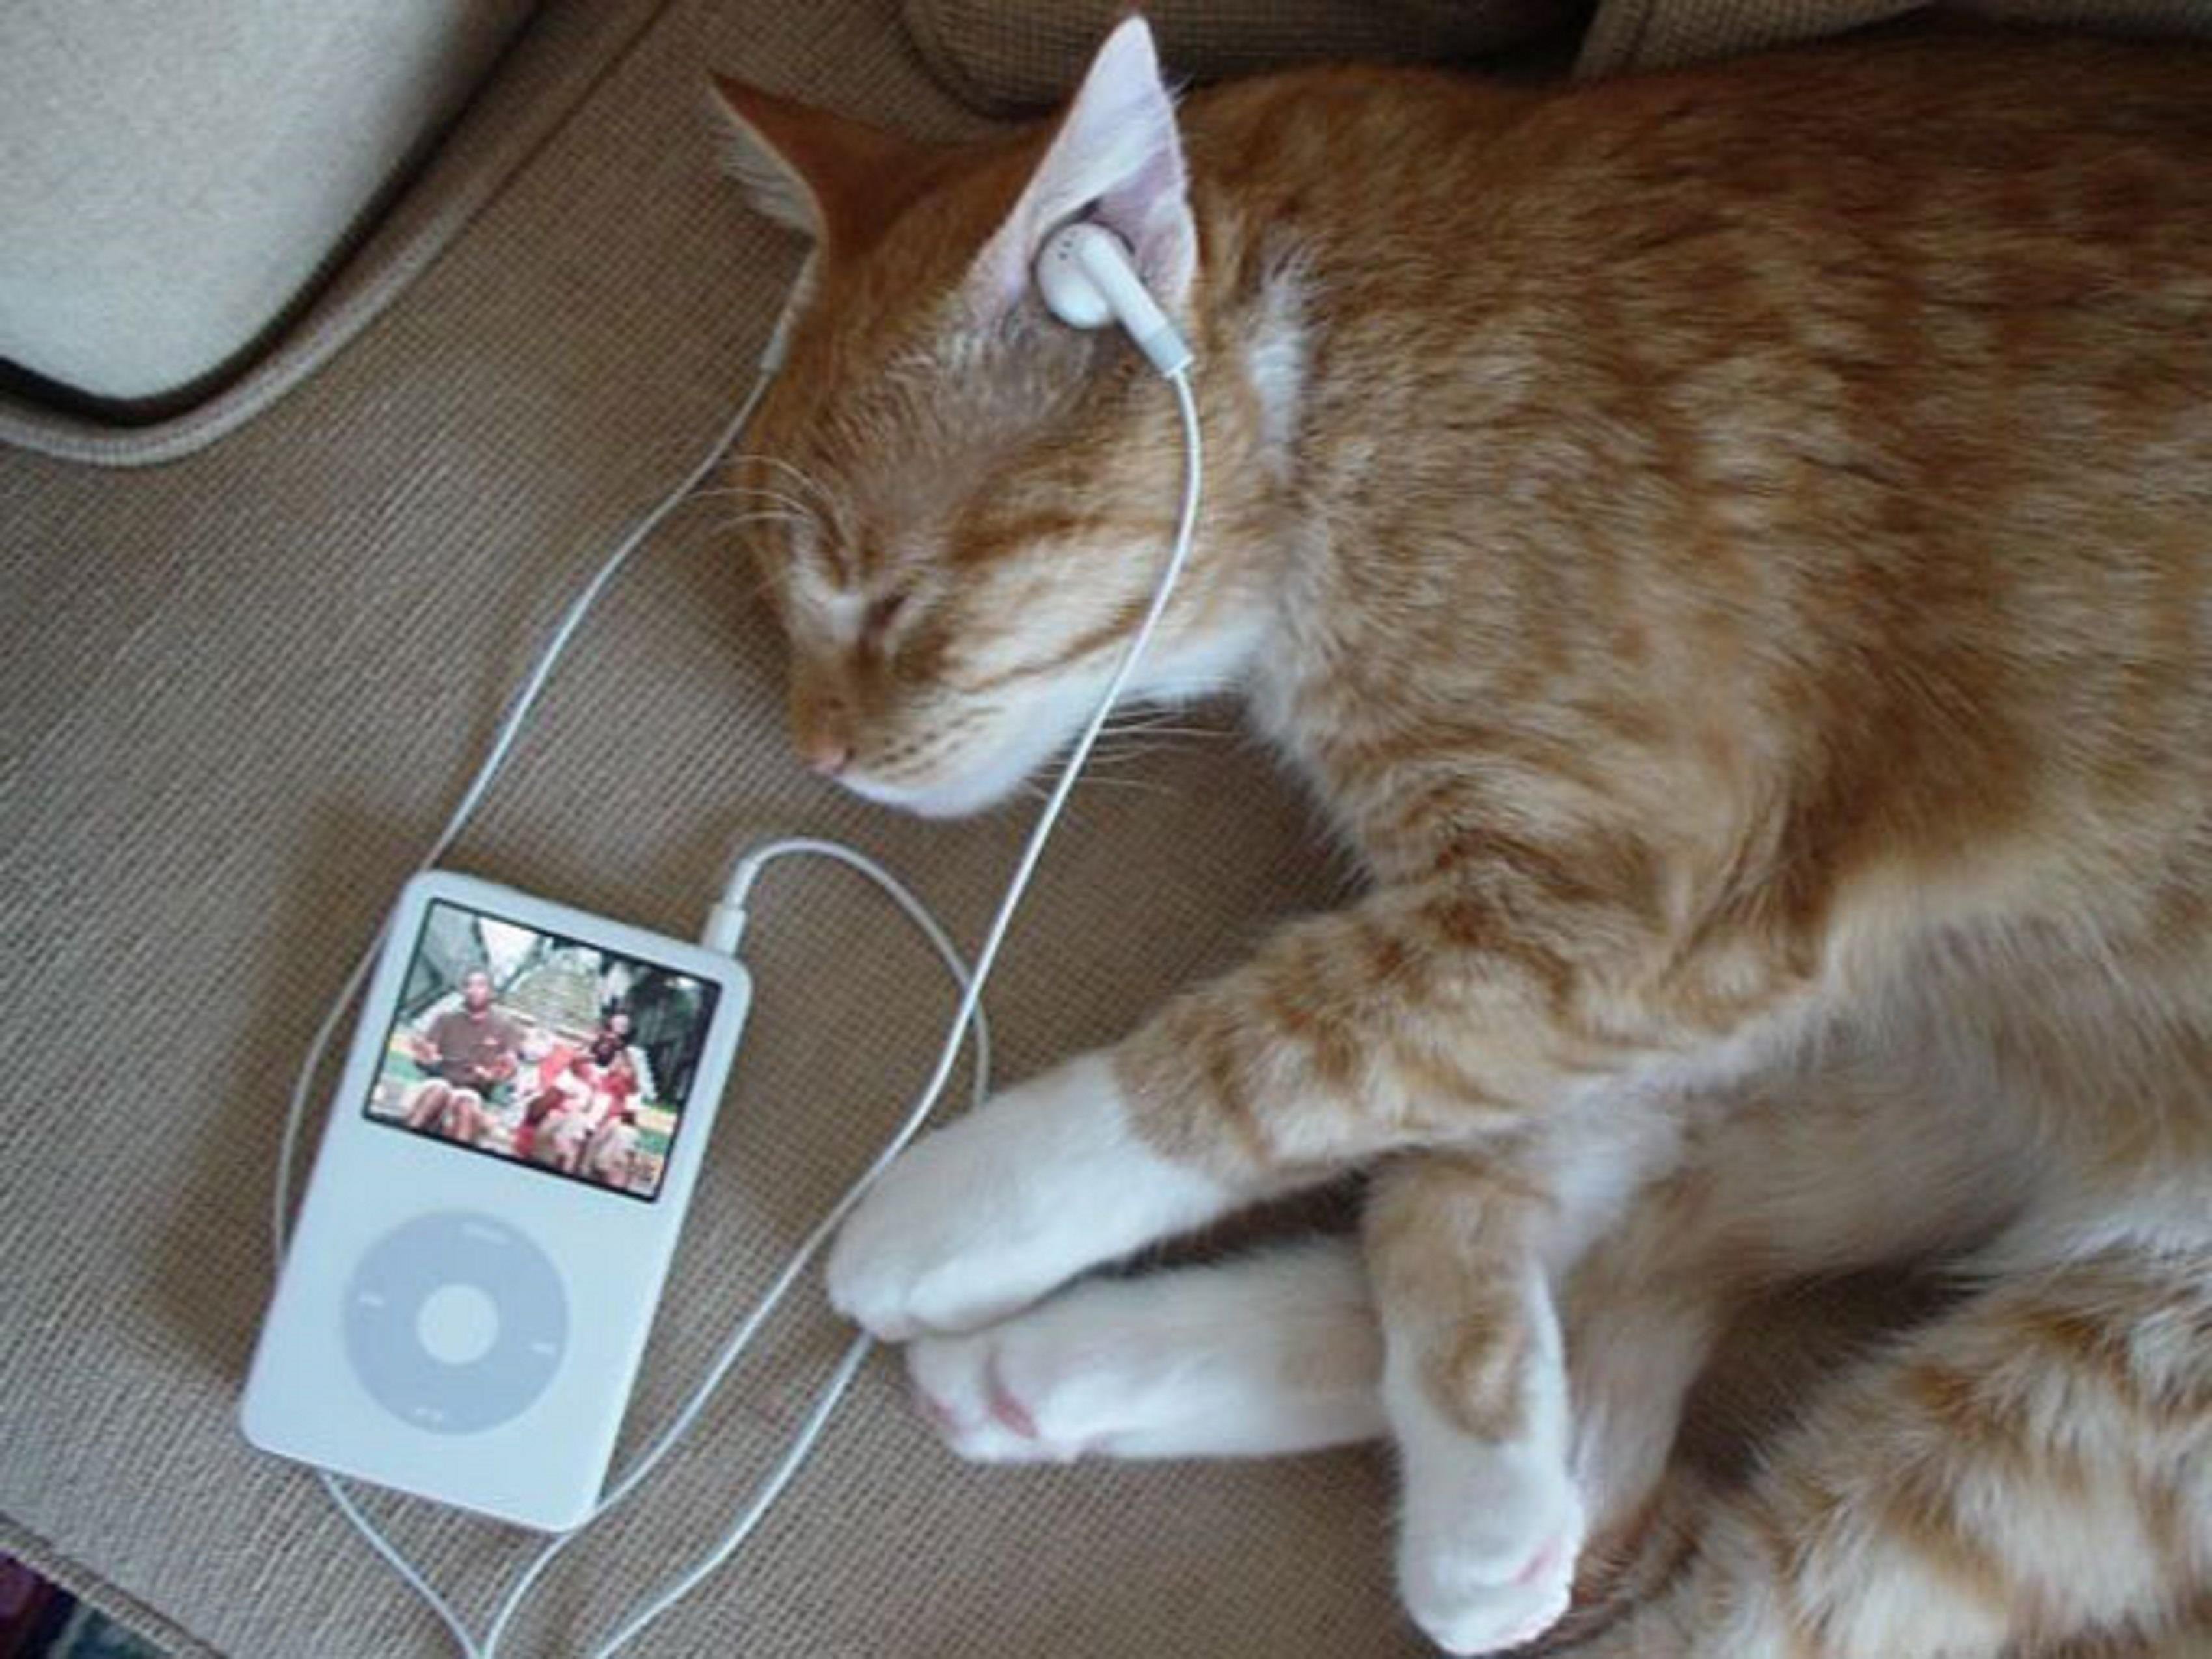 Spooked Cat Gif Funny Cat Listening Songs From